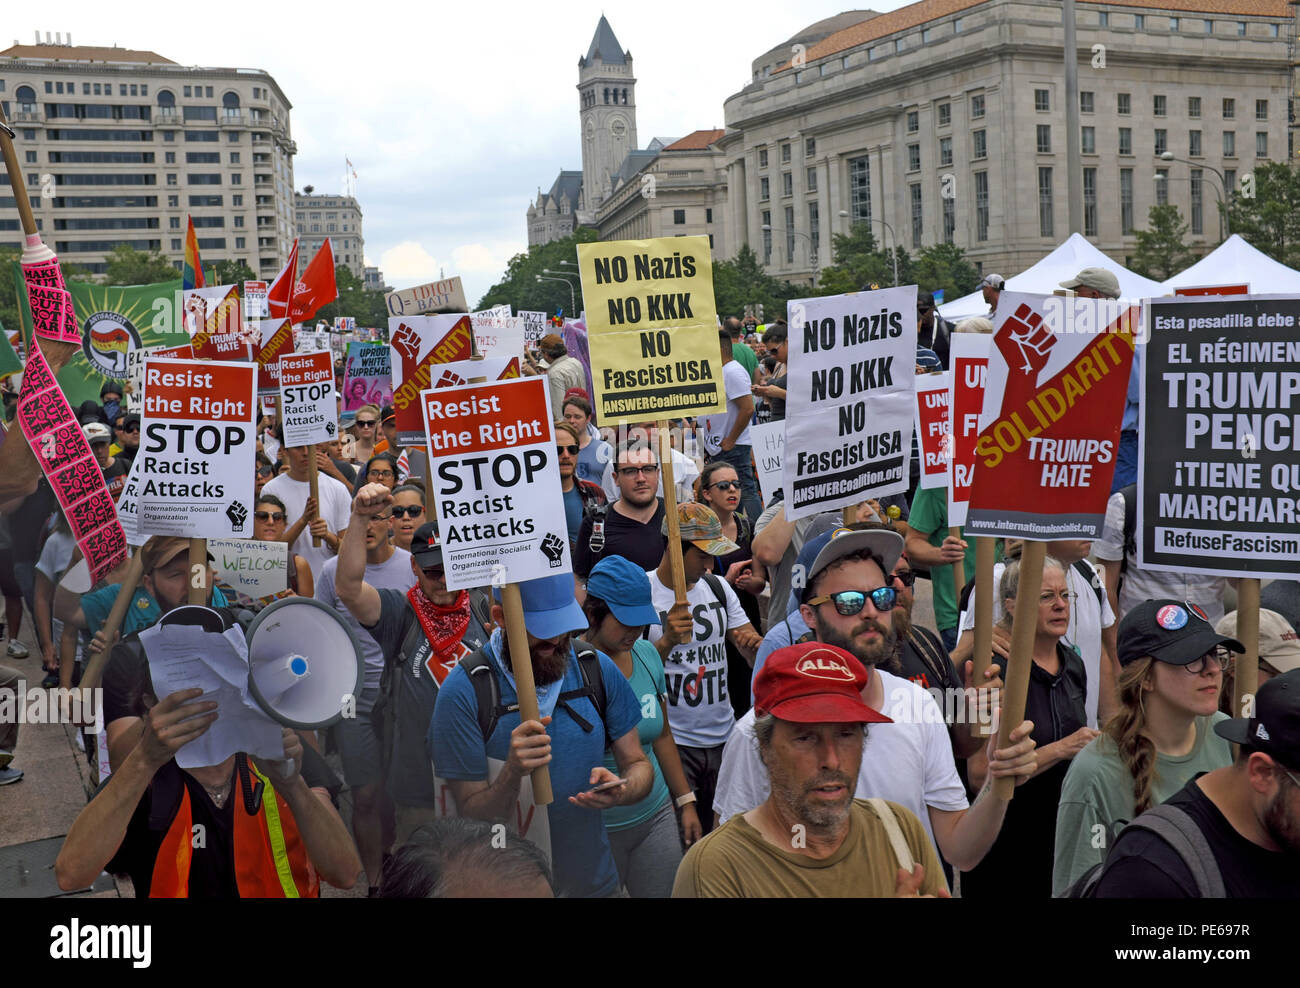 Washington D.C., USA. 12th August, 2018.Counterprotesters marching against the alt-right and white nationalism leave Freedom Park in Washington DC to march through the streets.  Resist the right, no kkk, stop racial attacks, solidarity Trumps hate, and Trump Pence regime sign are all signs transparent in the crowd of marchers making their way to Lafayette Park.  Credit: Mark Kanning/Alamy Live News Stock Photo